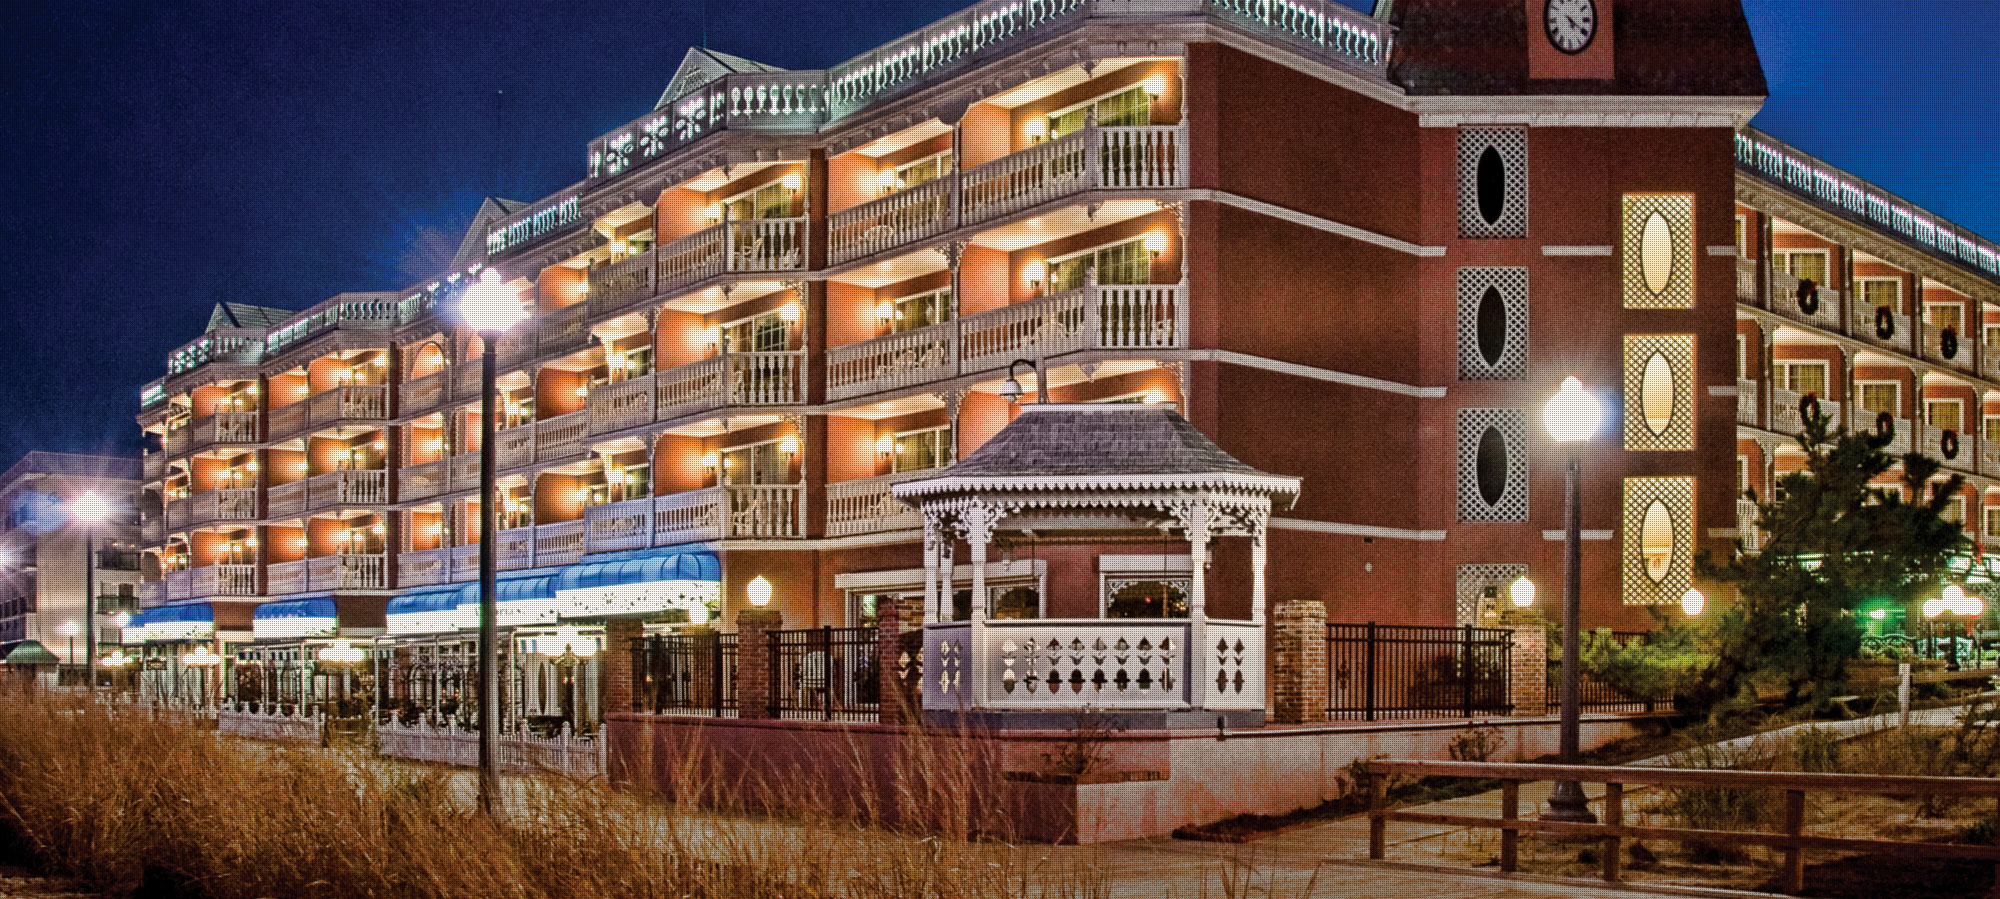 Hotels Near Bethany Beach Boardwalk